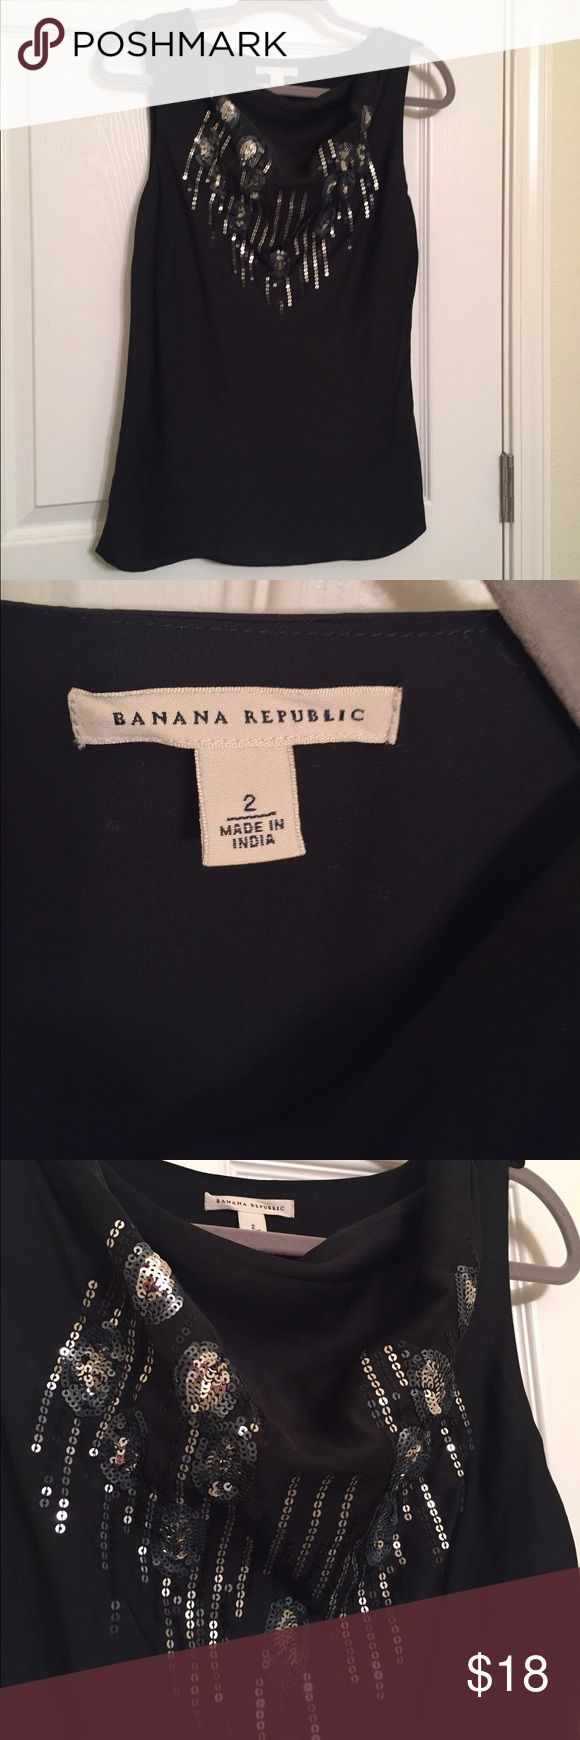 Banana Republic black blouse Flattering neckline, sequined bodice, sheer overlay, fully lined, zip up side, hangs long and loose, size 2 Banana Republic Tops Blouses